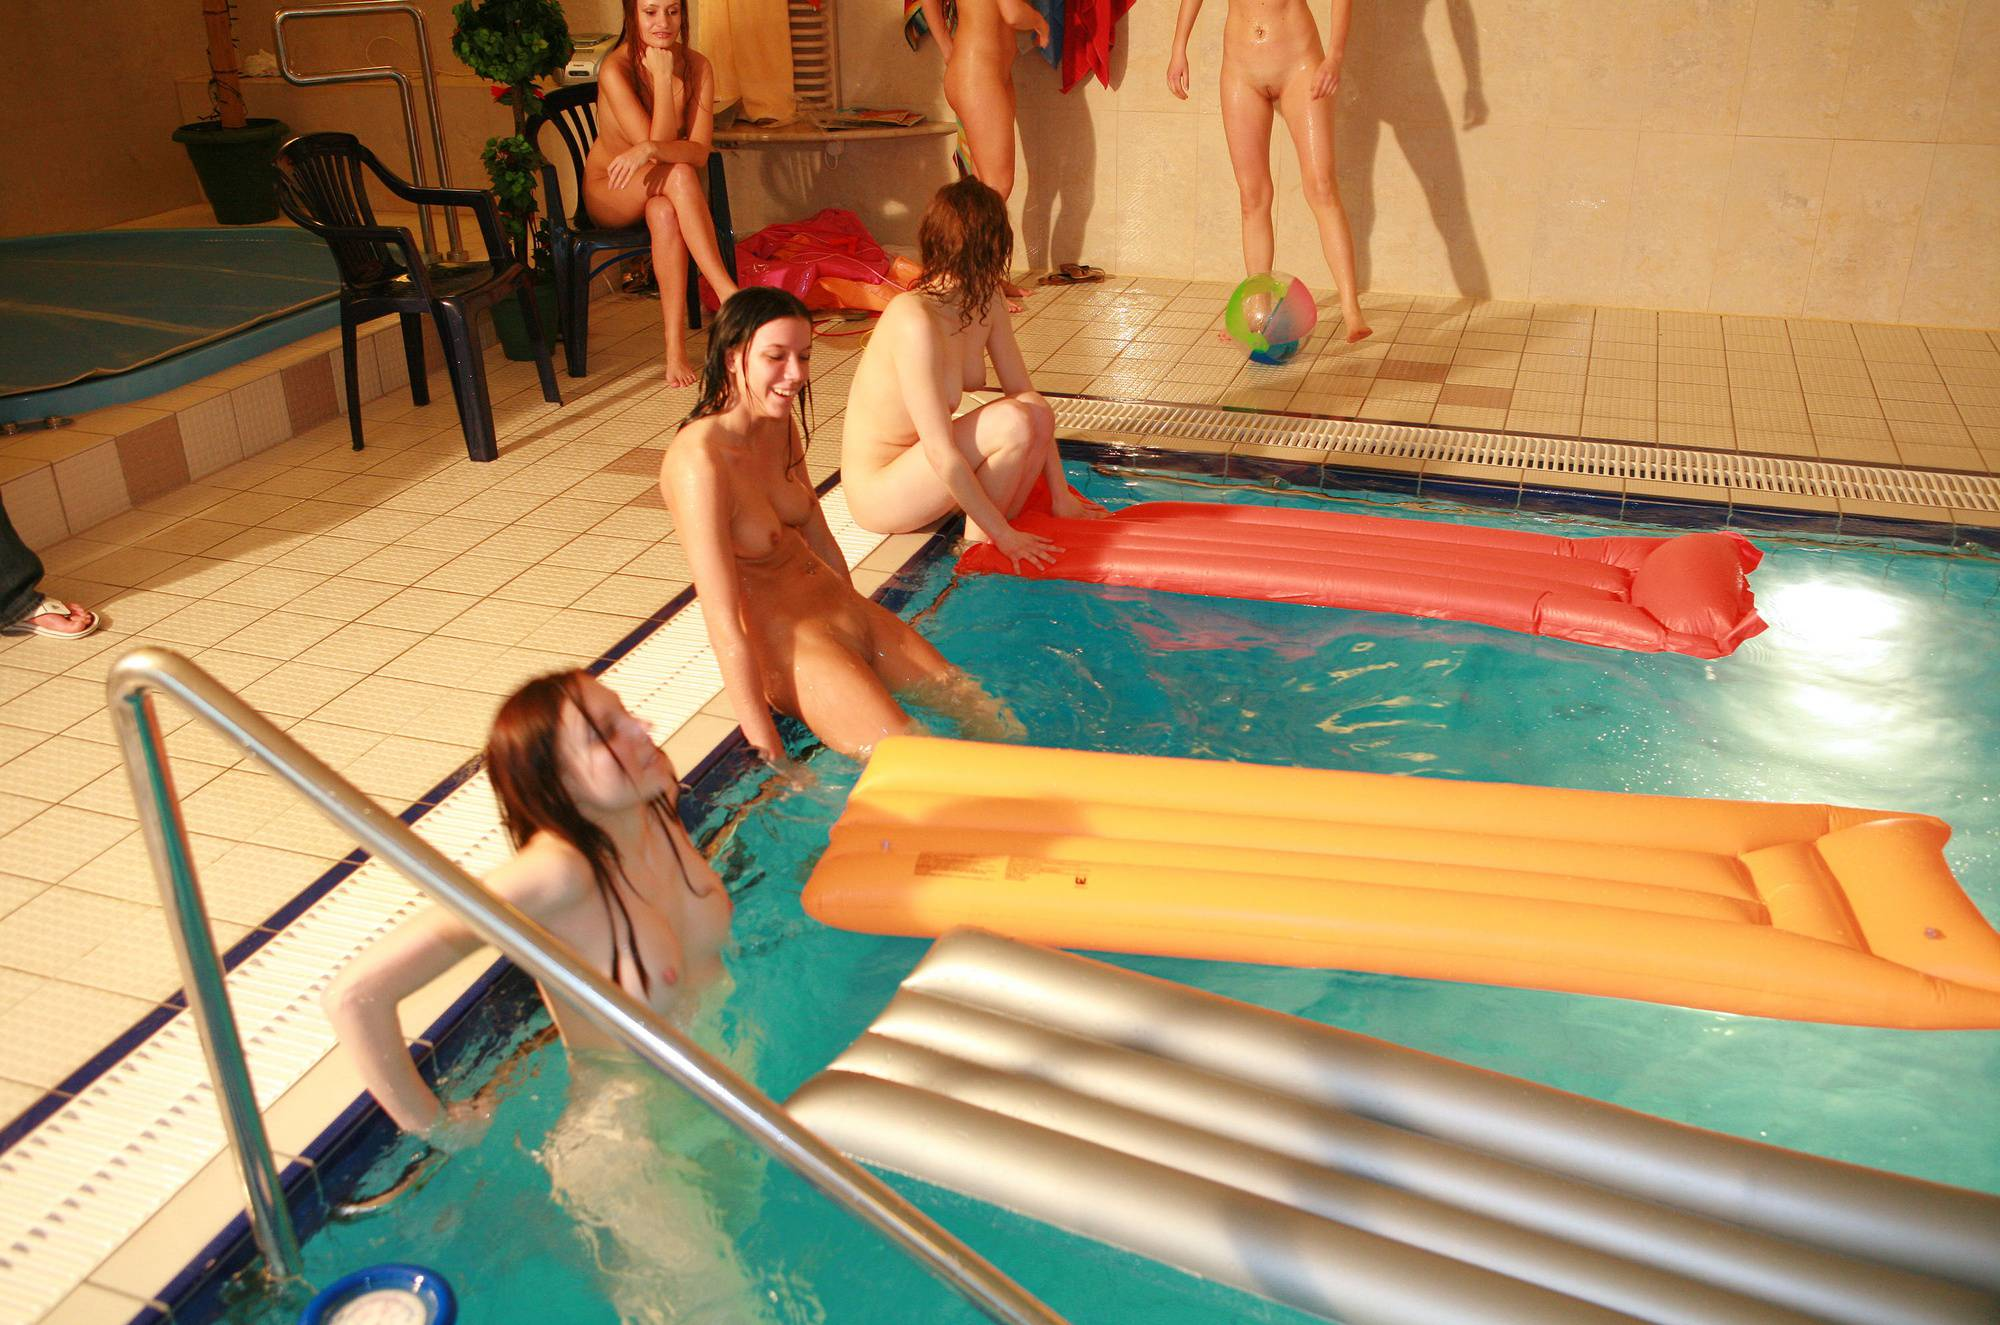 Pure Nudism Photos-Girls Pool Party Basin - 4